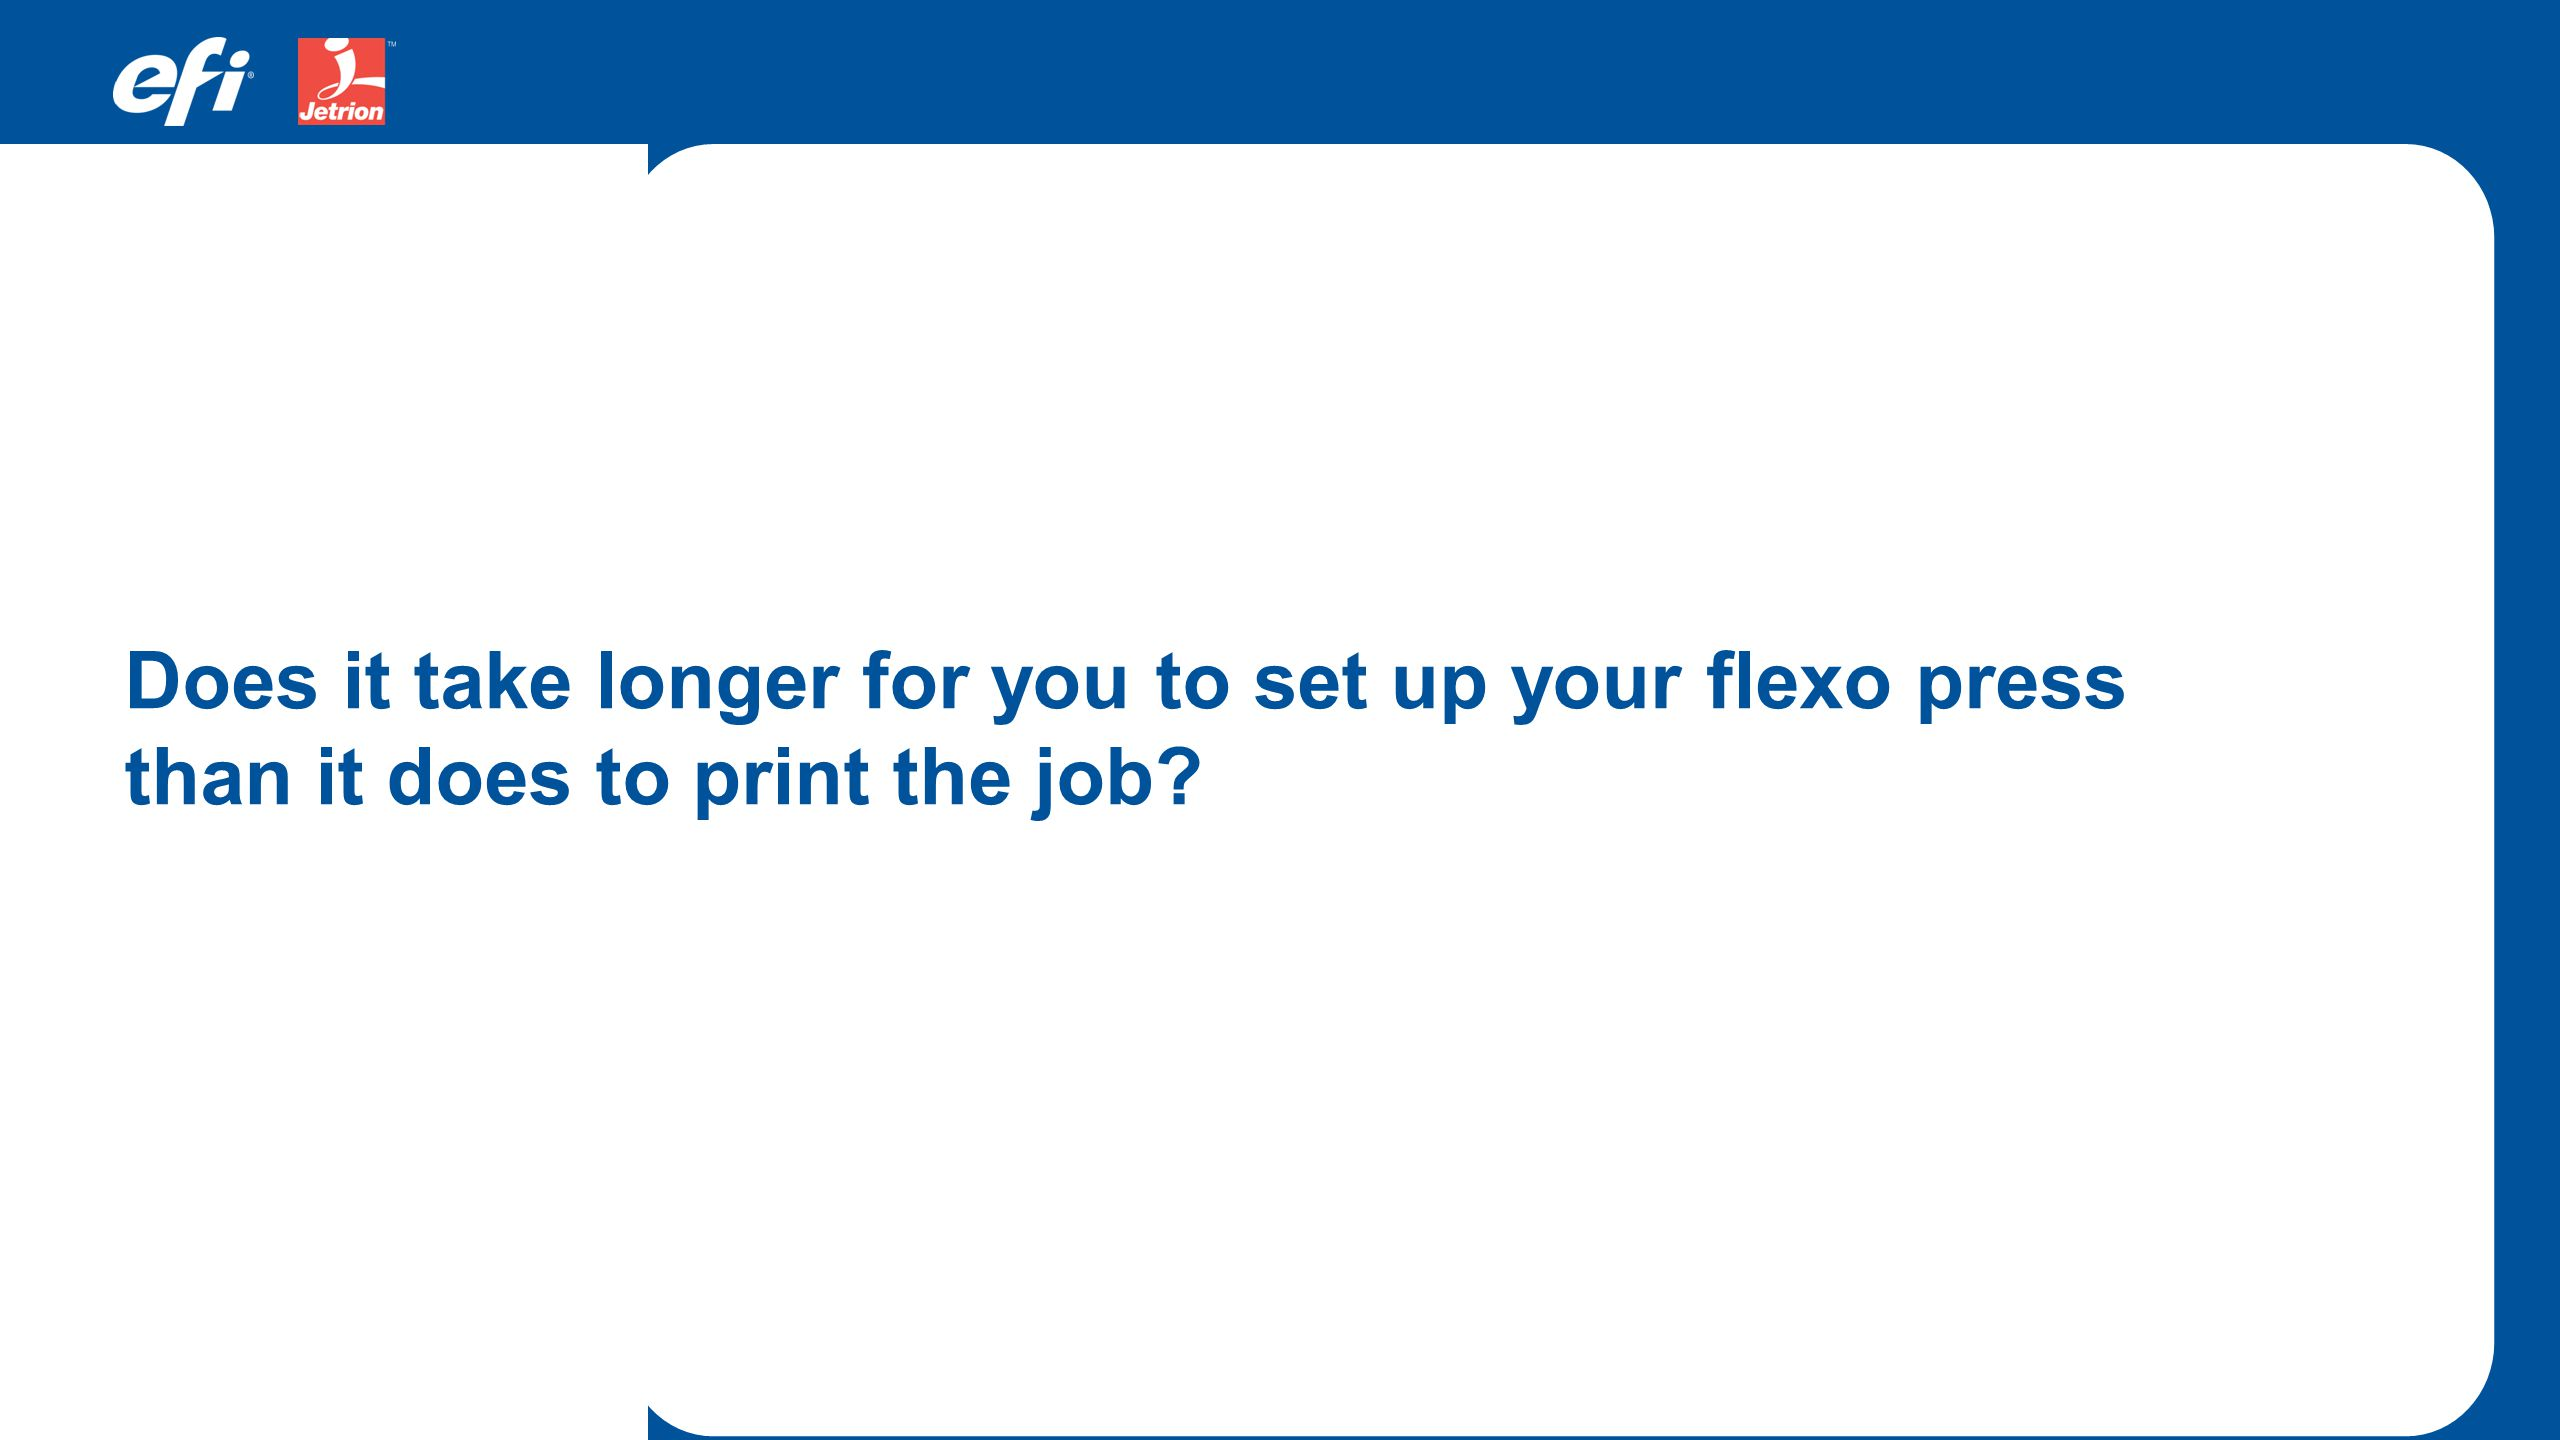 Does it take longer for you to set up your flexo press than it does to print the job